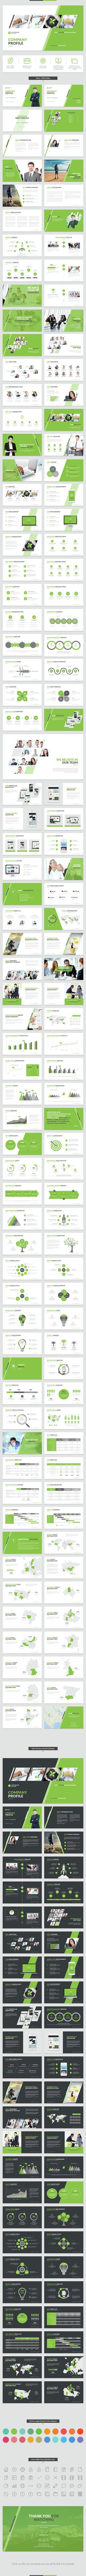 Company Profile PowerPoint Presentation Template. Download here: http://graphicriver.net/item/company-profile-powerpoint-template/15182669?ref=ksioks